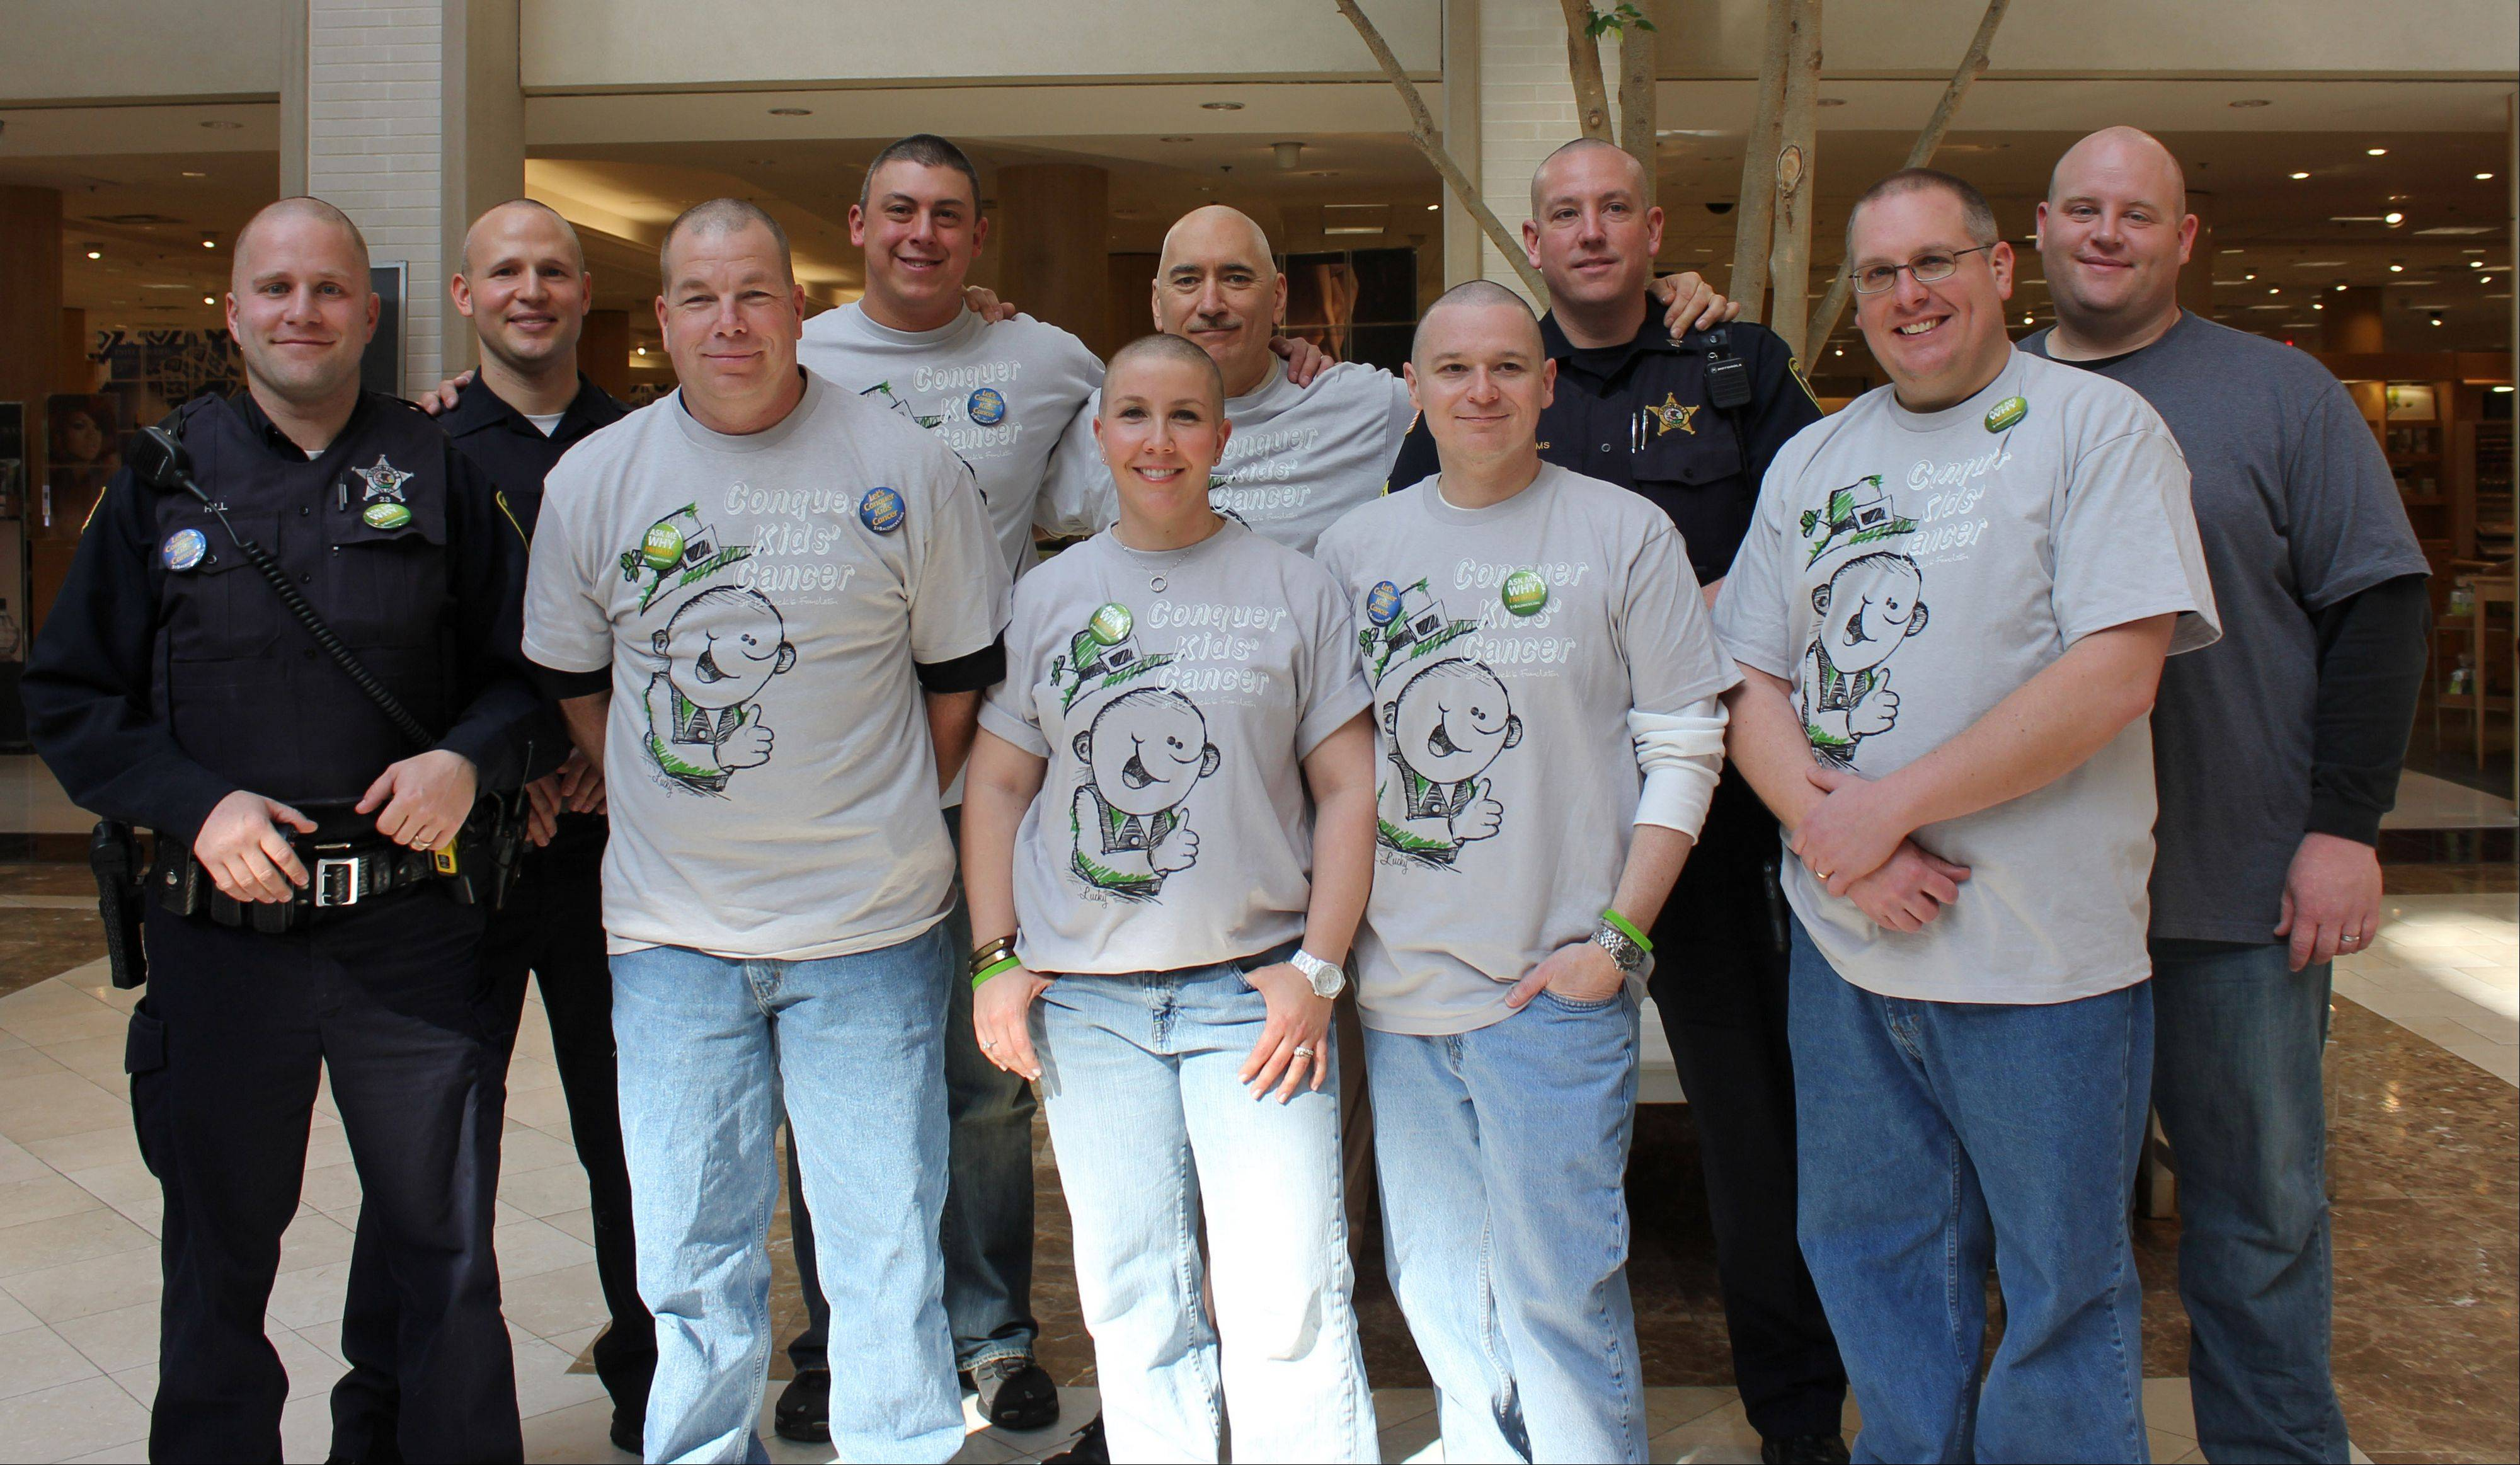 Vernon Hills police department participants in the 2012 St. Baldrick's event from left were: Officer Dan Hill, Officer Jim Koch, Officer Ward Feger, Officer Dan Mead, Officer Rebecca Foy, Commander Jack Rabey, Investigator Ken Berryhill, Sergeant (now Commander) Todd Williams, Officer Jim Brocks, Investigator Andy Rheintgen.